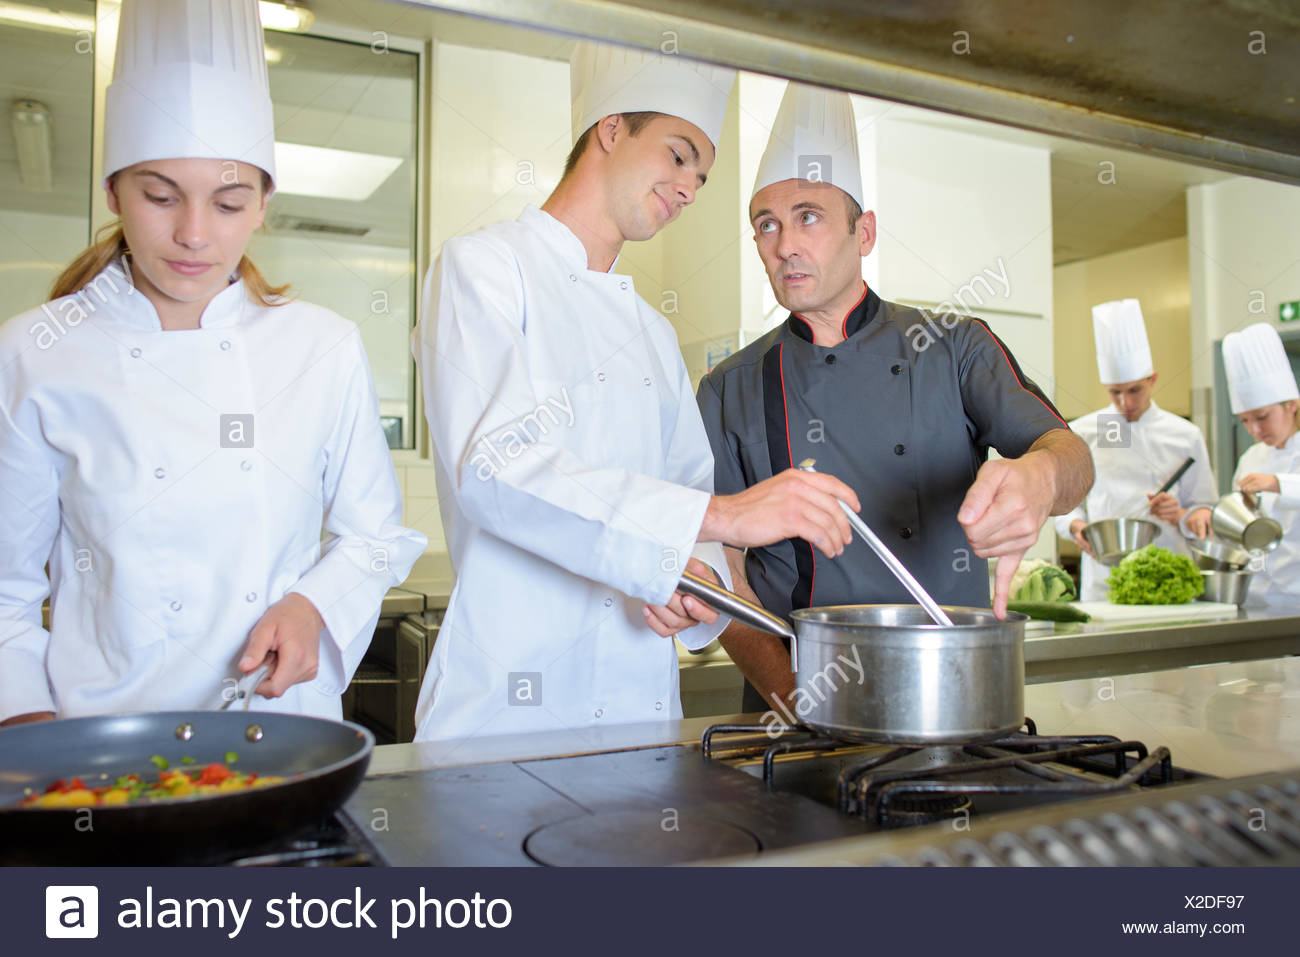 Chef advising cookery student - Stock Image